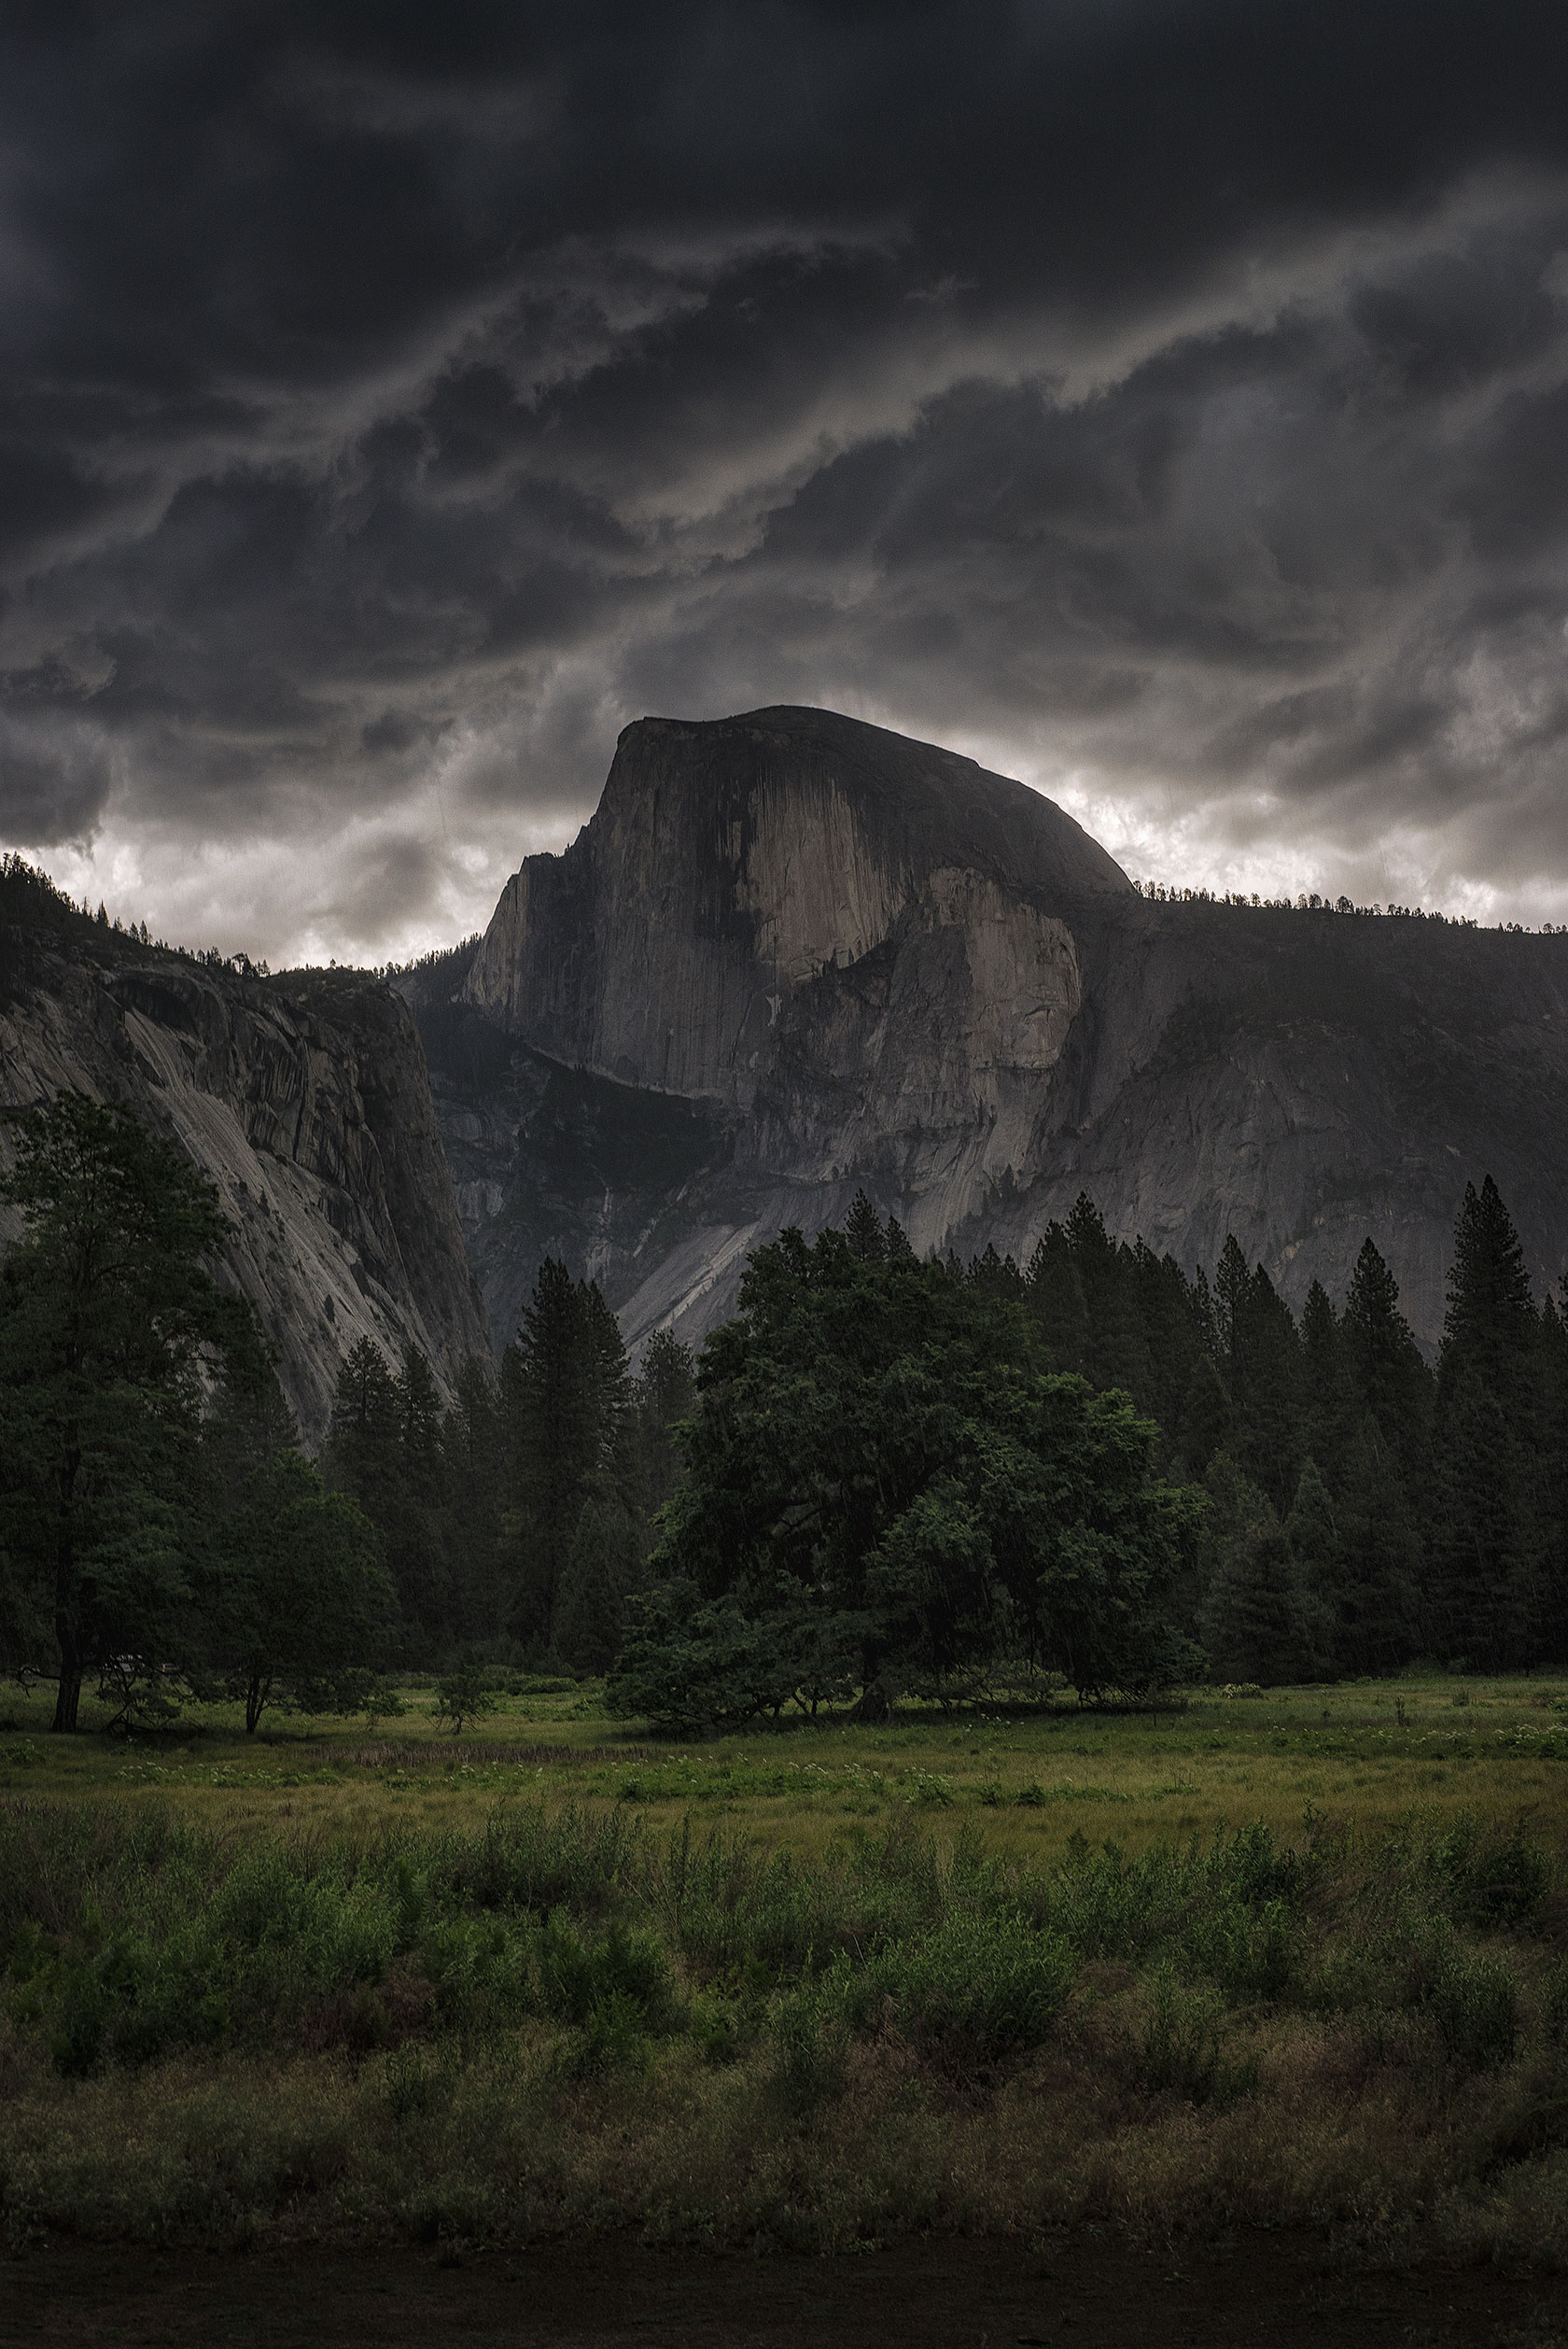 austin-trigg-yosemite-national-park-weather-clouds-storm-california-valley-Moody-Half-Dome.jpg